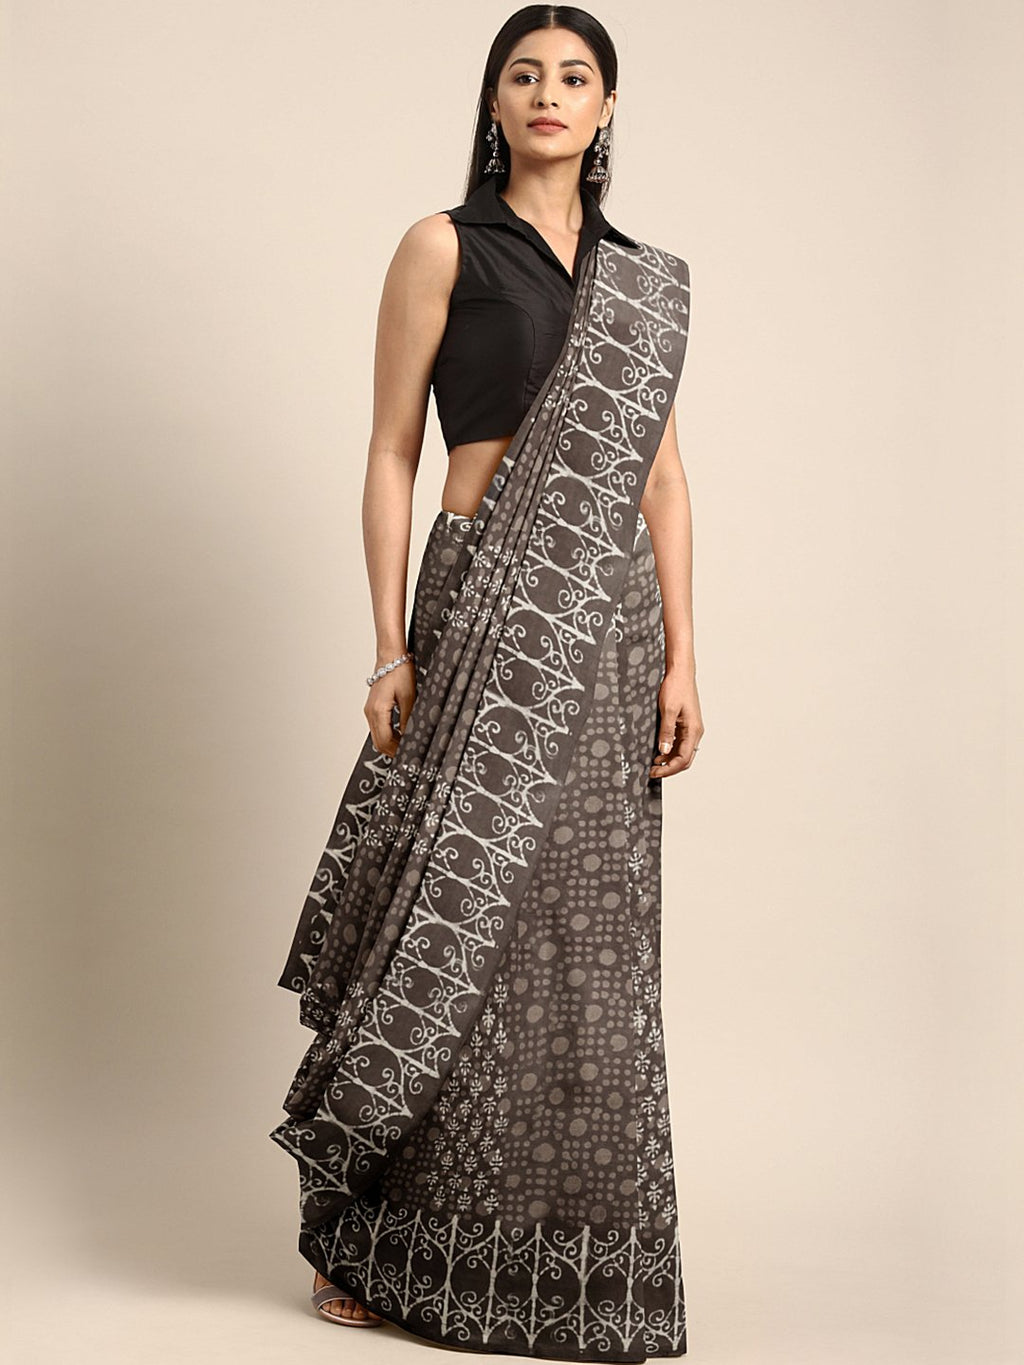 Charcoal Grey Mud Resist Handblock Print Handcrafted Cotton Saree-Saree-Kalakari India-BHKPSA0040-Cotton, Dabu, Geographical Indication, Hand Blocks, Hand Crafted, Heritage Prints, Indigo, Natural Dyes, Sarees, Sustainable Fabrics-[Linen,Ethnic,wear,Fashionista,Handloom,Handicraft,Indigo,blockprint,block,print,Cotton,Chanderi,Blue, latest,classy,party,bollywood,trendy,summer,style,traditional,formal,elegant,unique,style,hand,block,print, dabu,booti,gift,present,glamorous,affordable,collectible,S